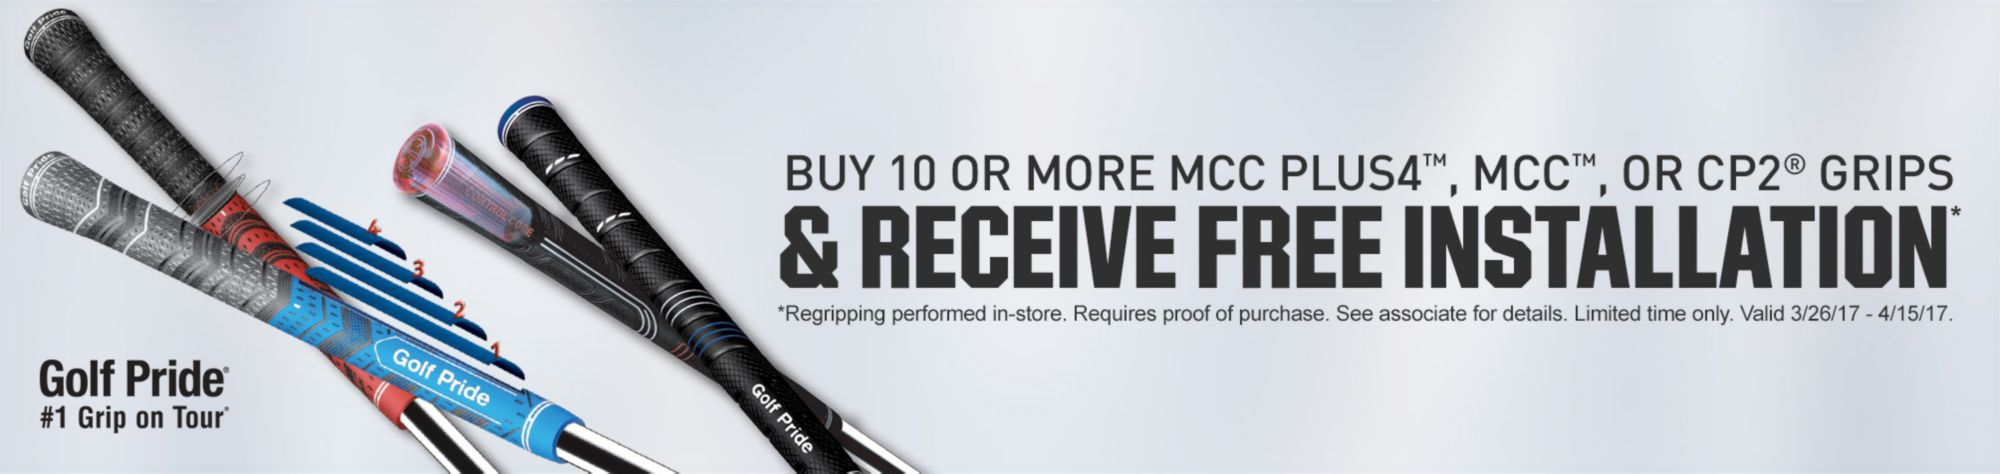 Buy 10 or More MCC PLUS4™, MCC™, or CP2® Grips and Receive Free Installation*